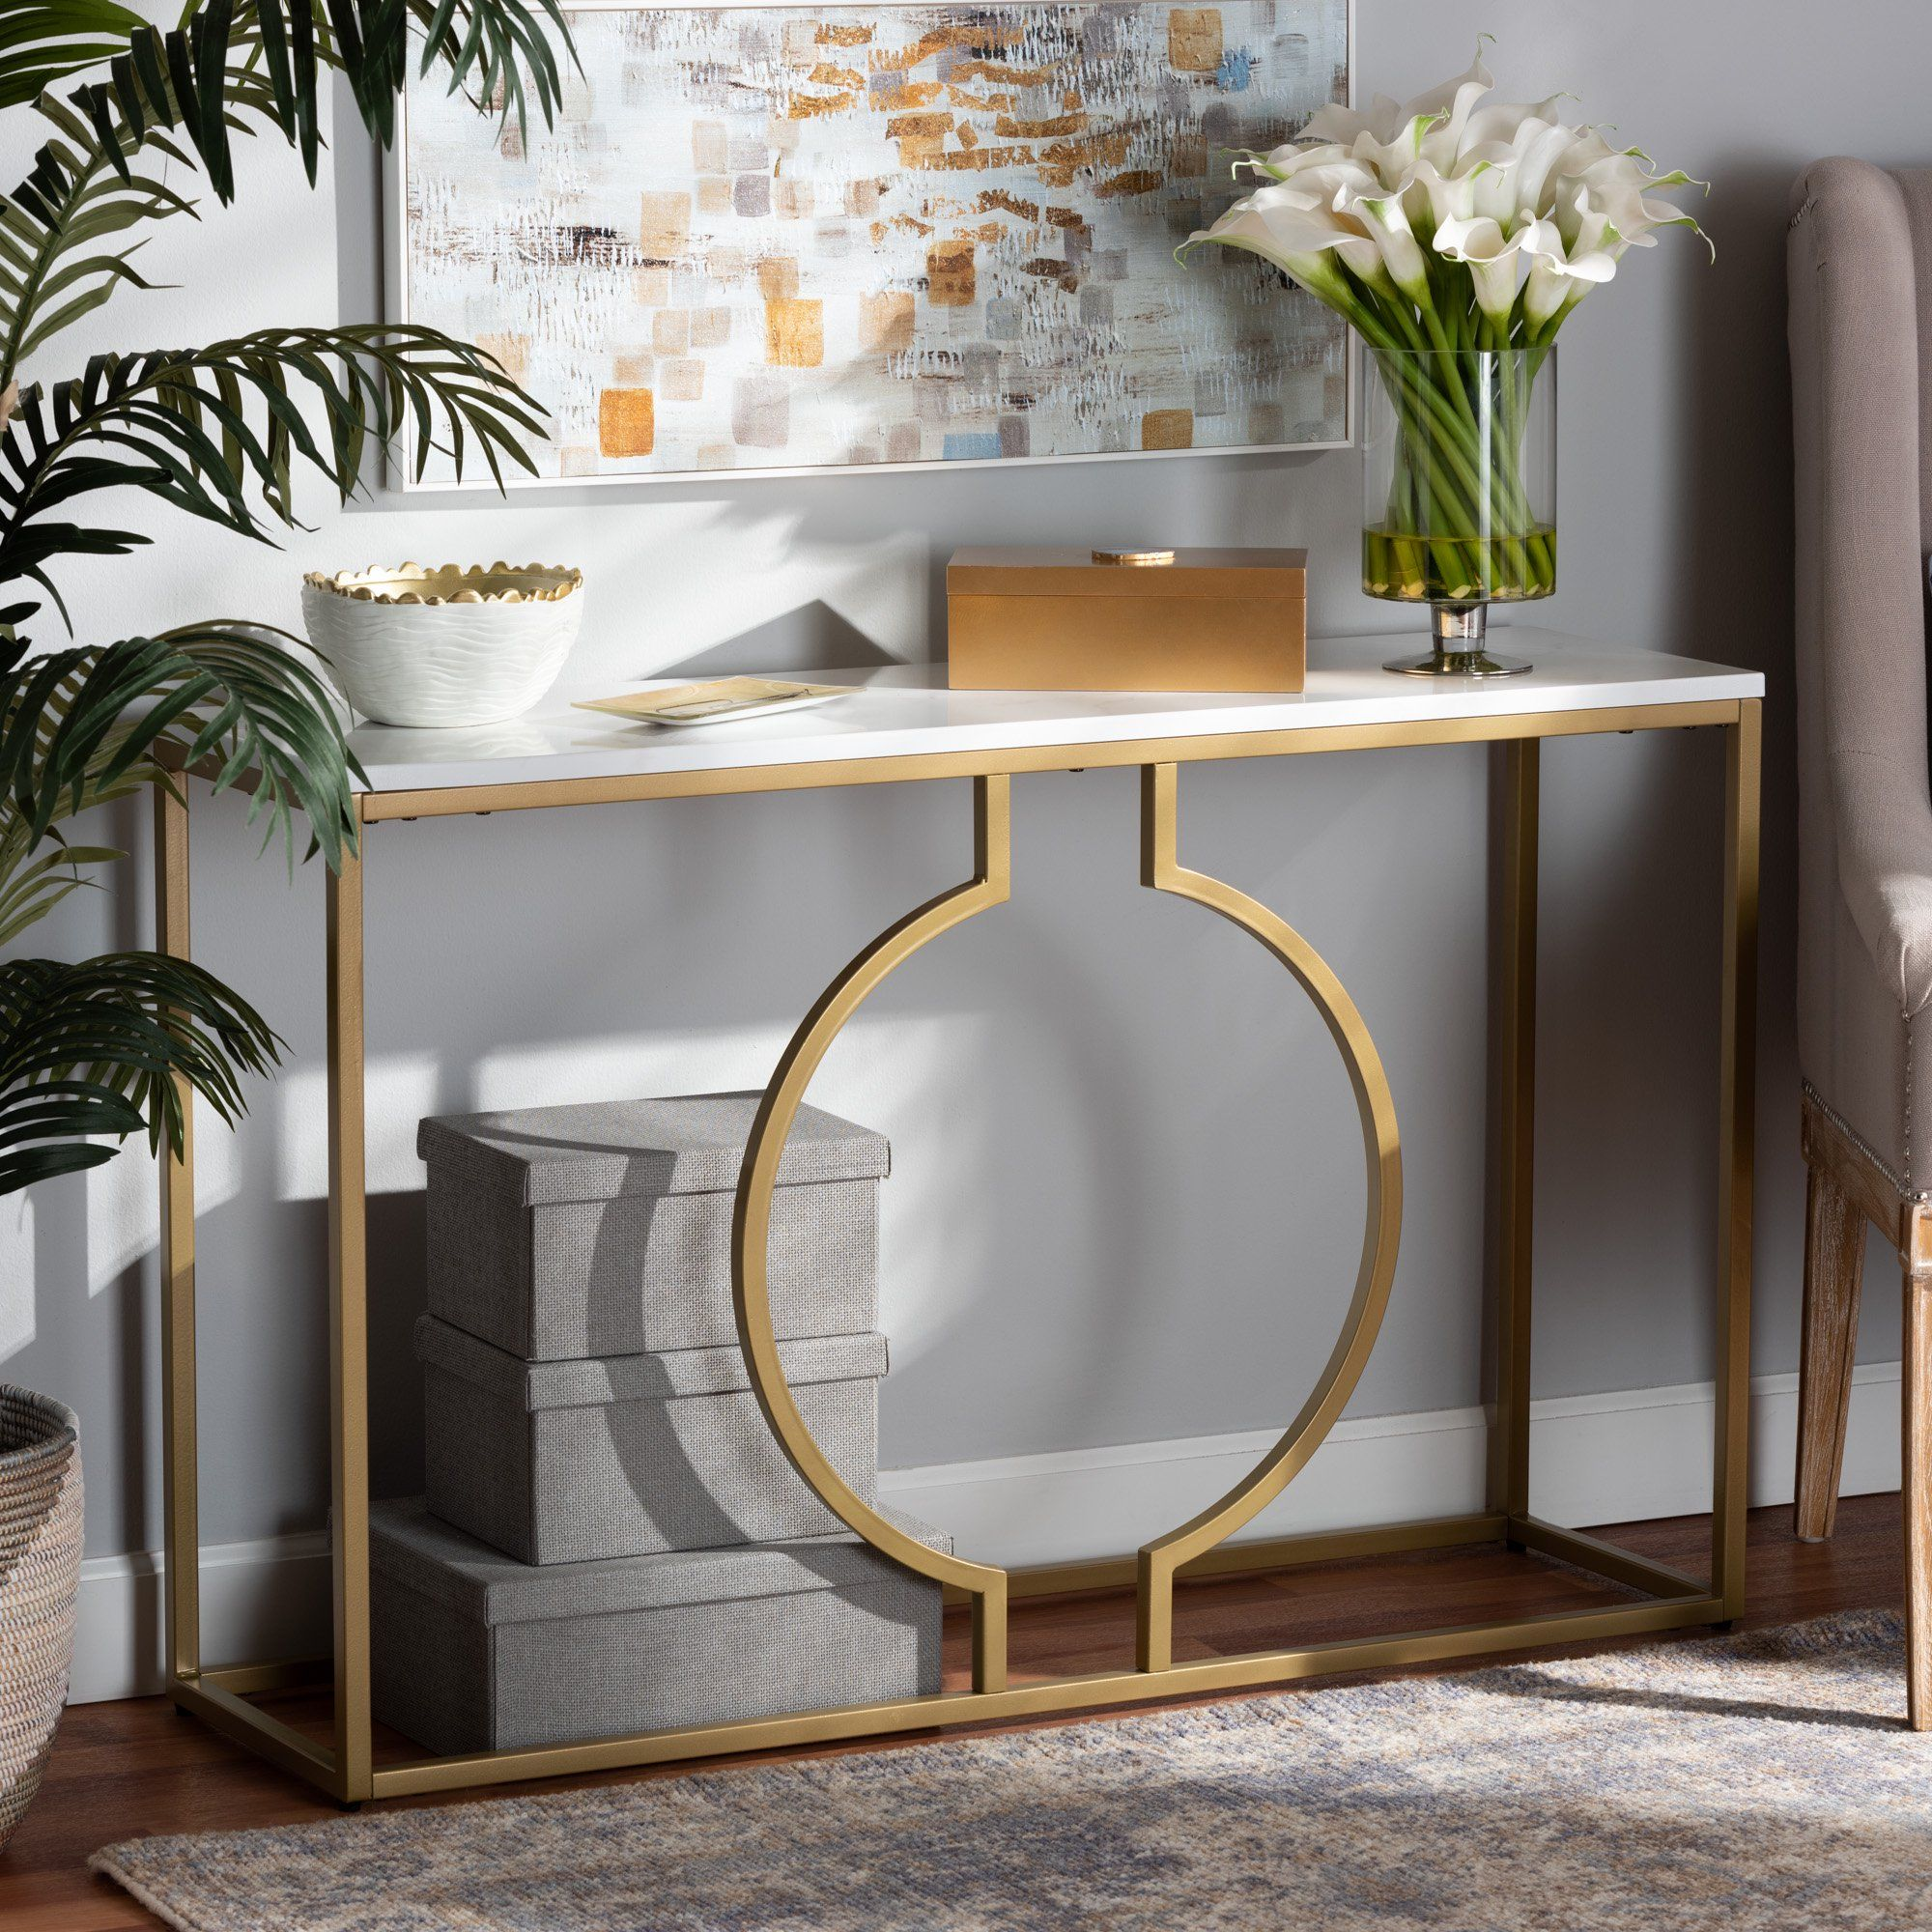 Baxton Studio Caldwell Modern And Contemporary Gold Finished Metal Console Table With Faux Marble Tabletop Walmart Com Metal Console Table Contemporary Console Table Marble Console Table